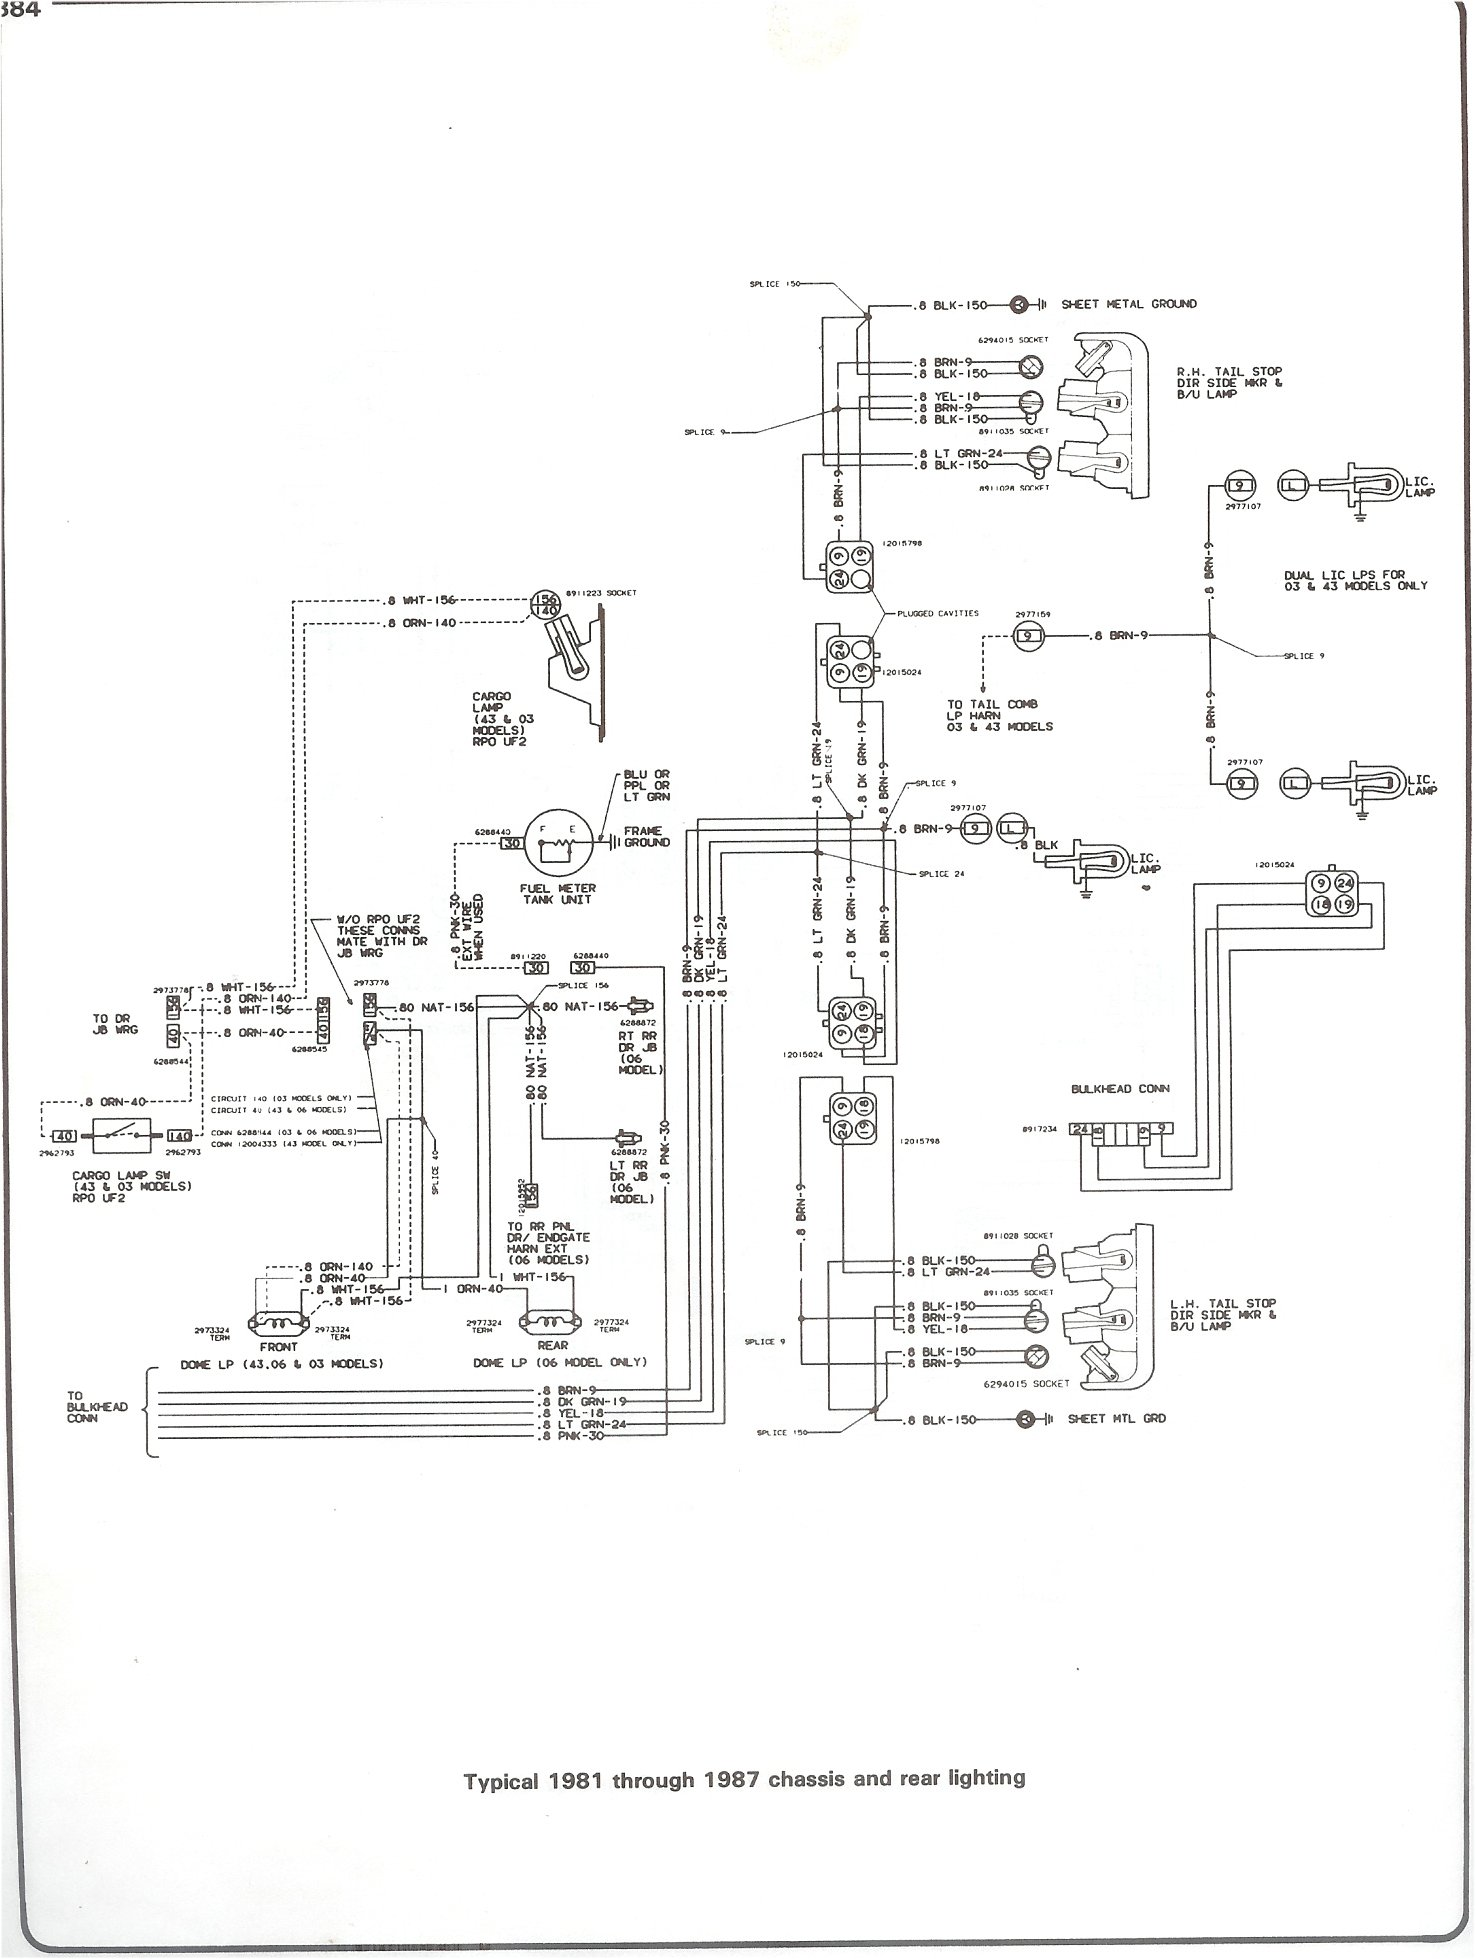 Chevy S10 S10 Wiring Diagram